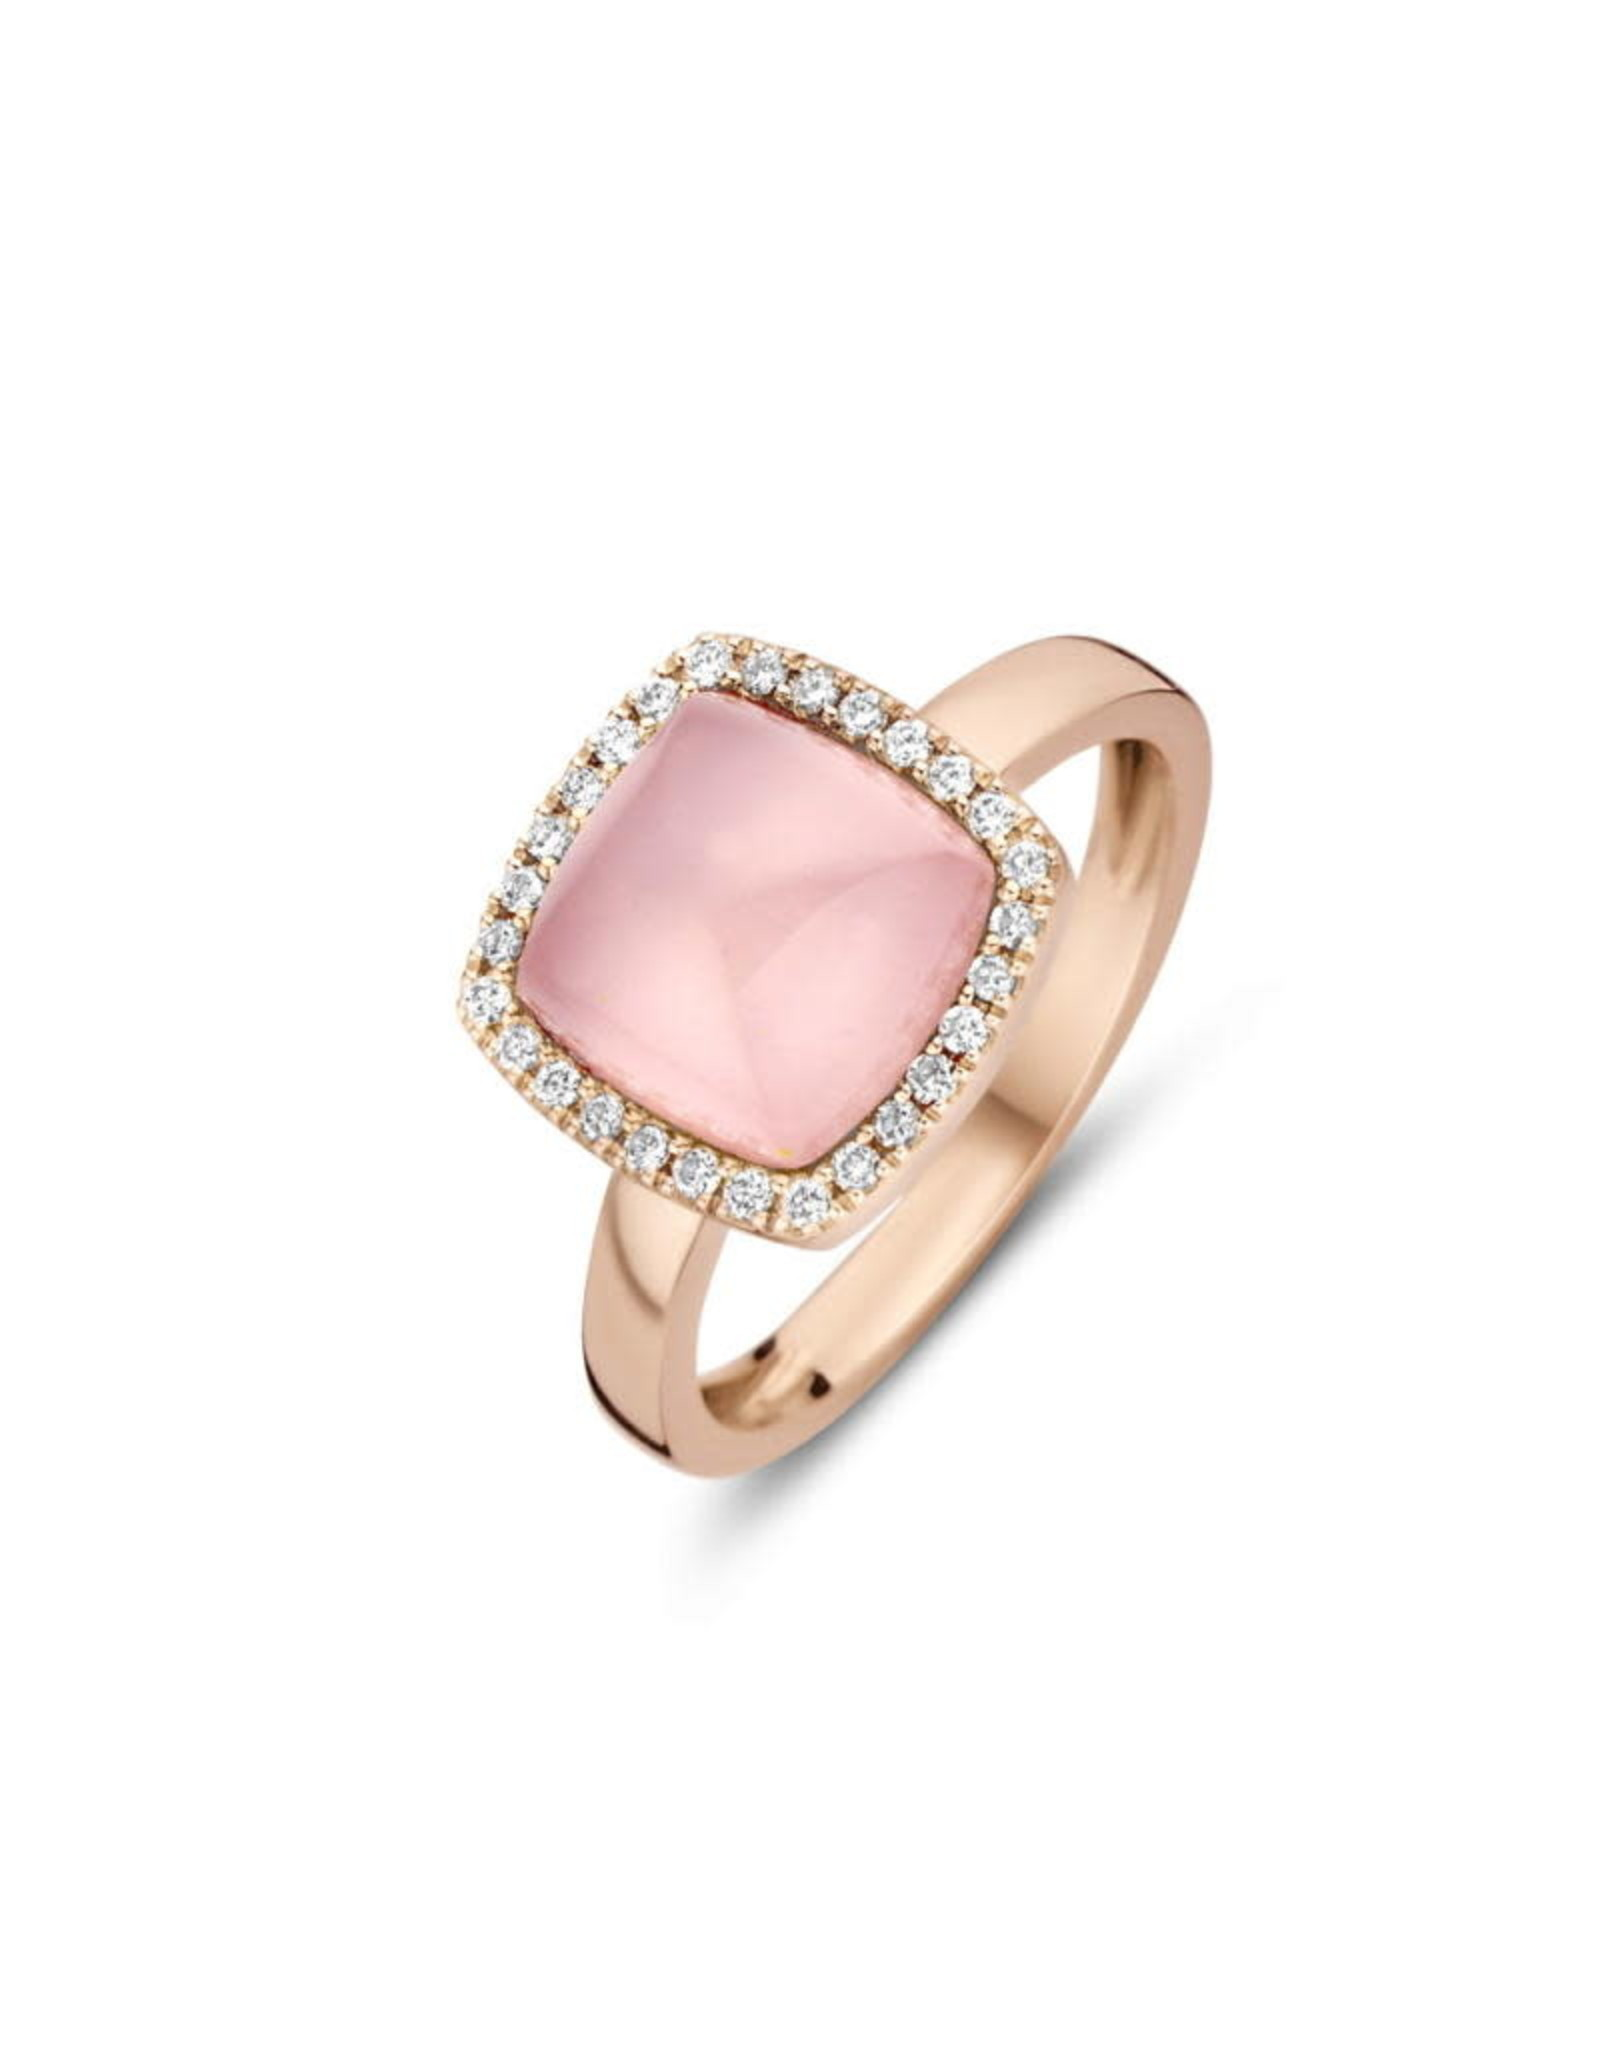 One More Ring One More Roos Goud 18kt 062250/XN Roze kwarts op parelmoer  Briljant